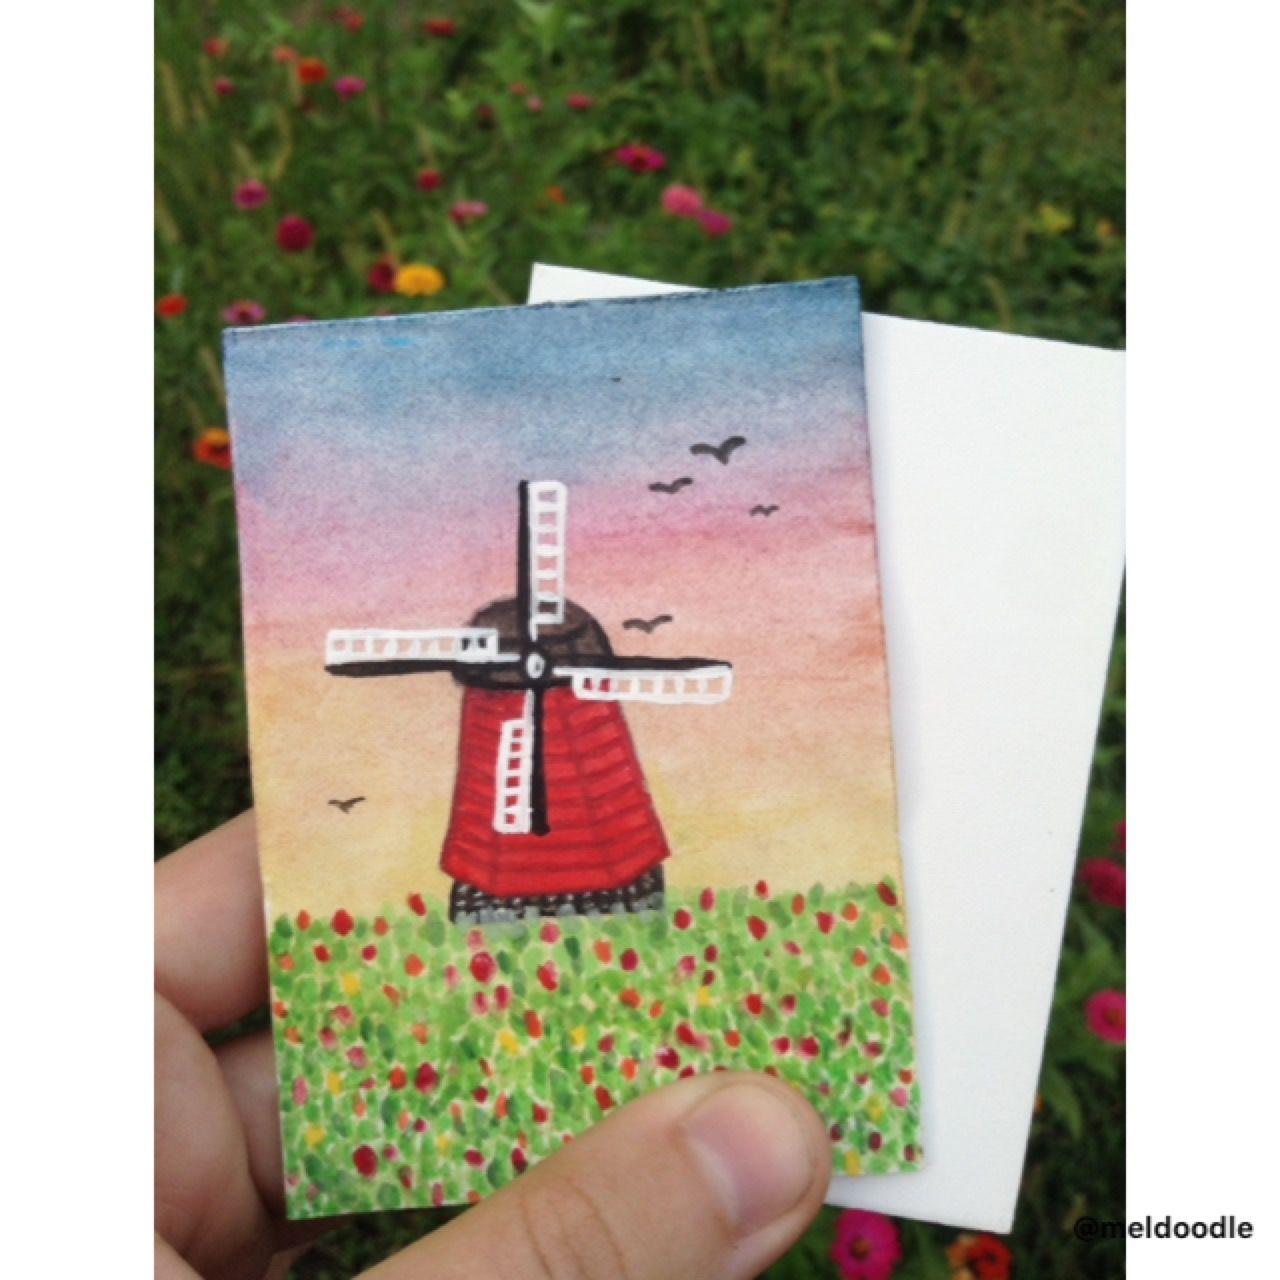 Artists trading card done with watercolors (Instagram: @meldoodle)